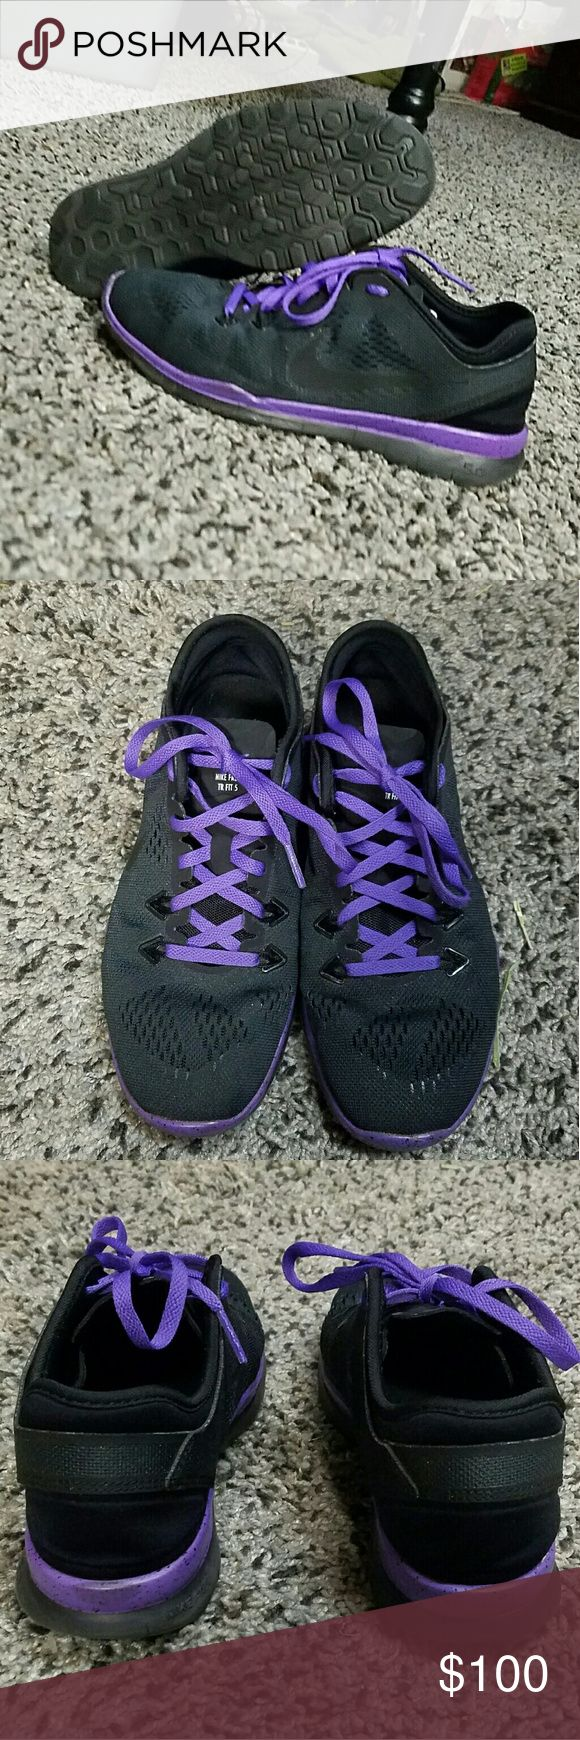 Custom NIKE iD running shoes Custom NIKE iD running shoes I bought a few months ago, size 6.5 women's US  Extremely light weight and comfortable Black and purple with black speckles on the purple rim Feel free to ask questions or for more pictures Make an offer! Nike Shoes Athletic Shoes